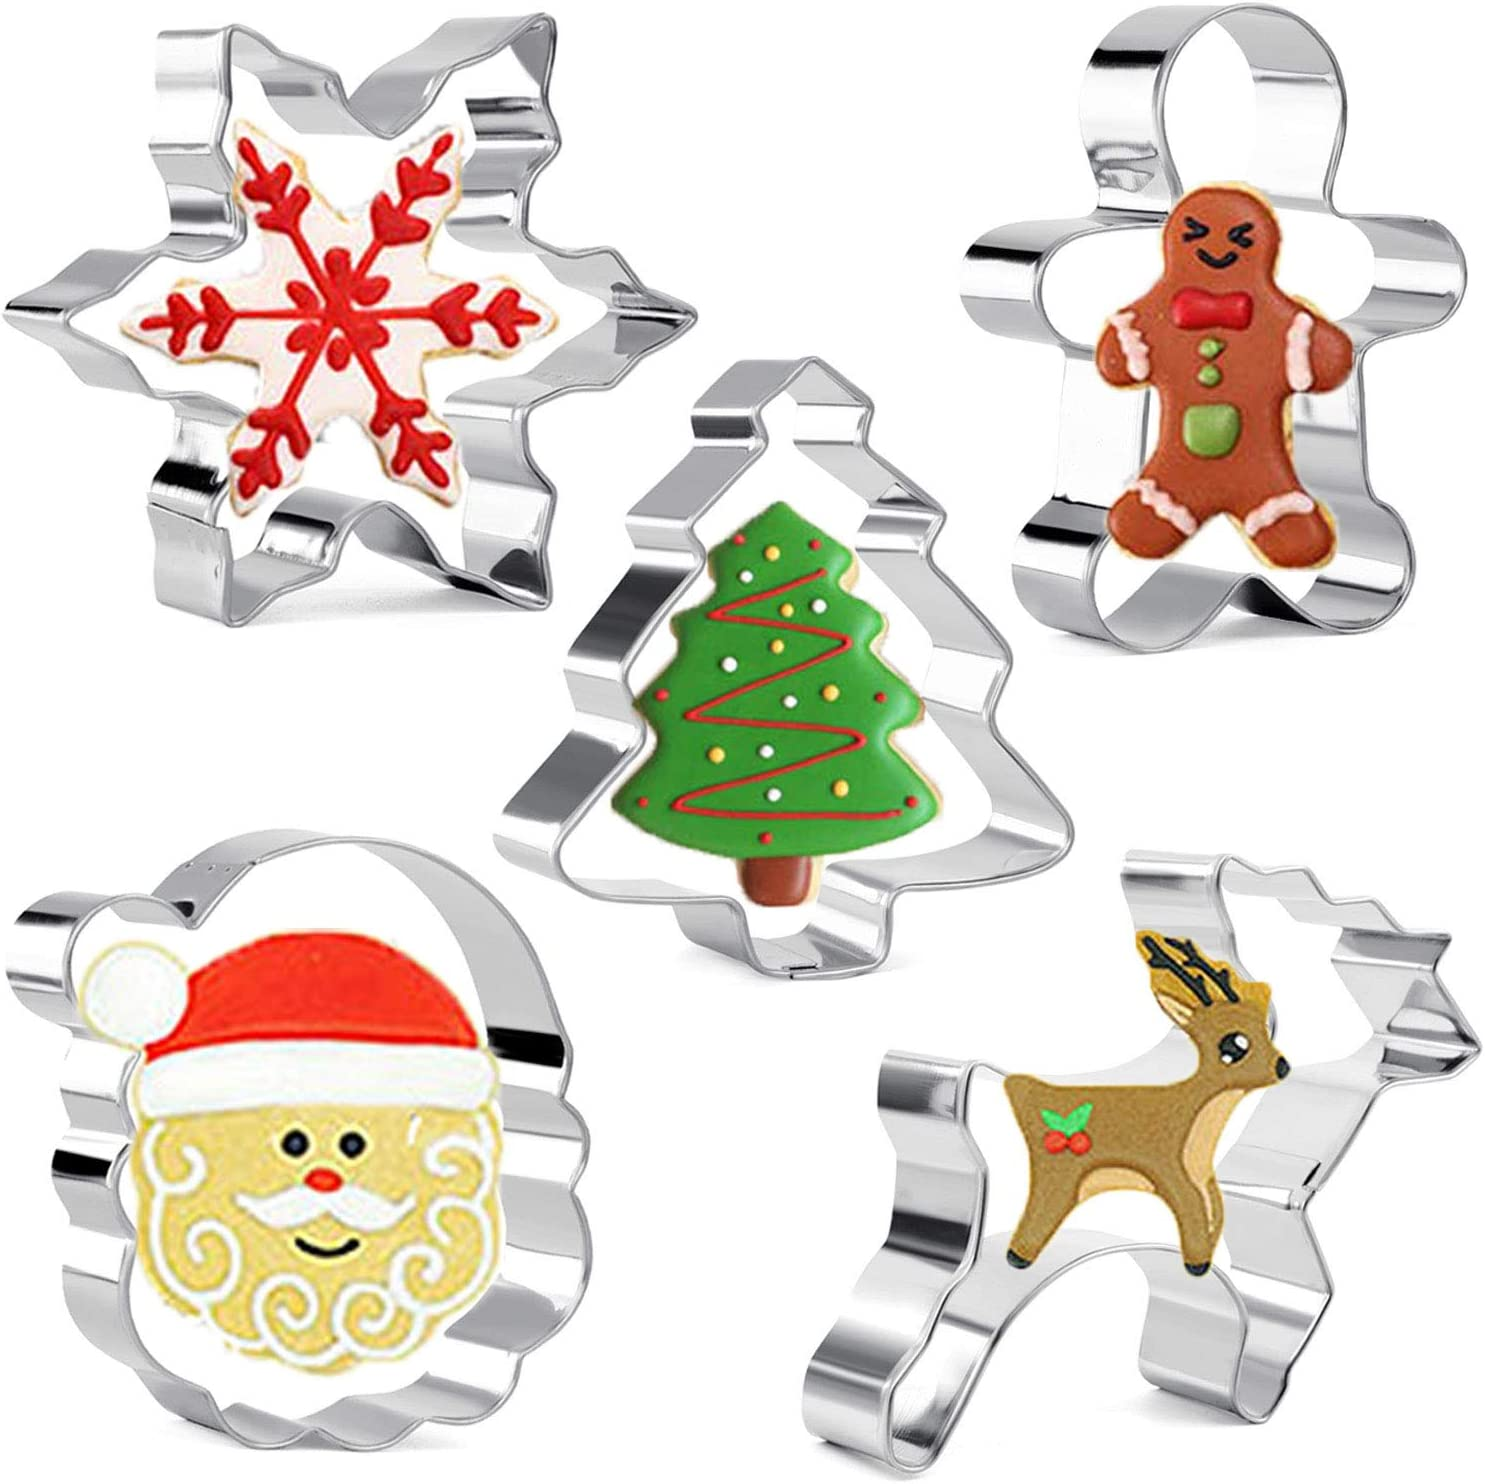 Set of 24 Assorted Tiny Sugary Gingerbread Themed Christmas Ornaments